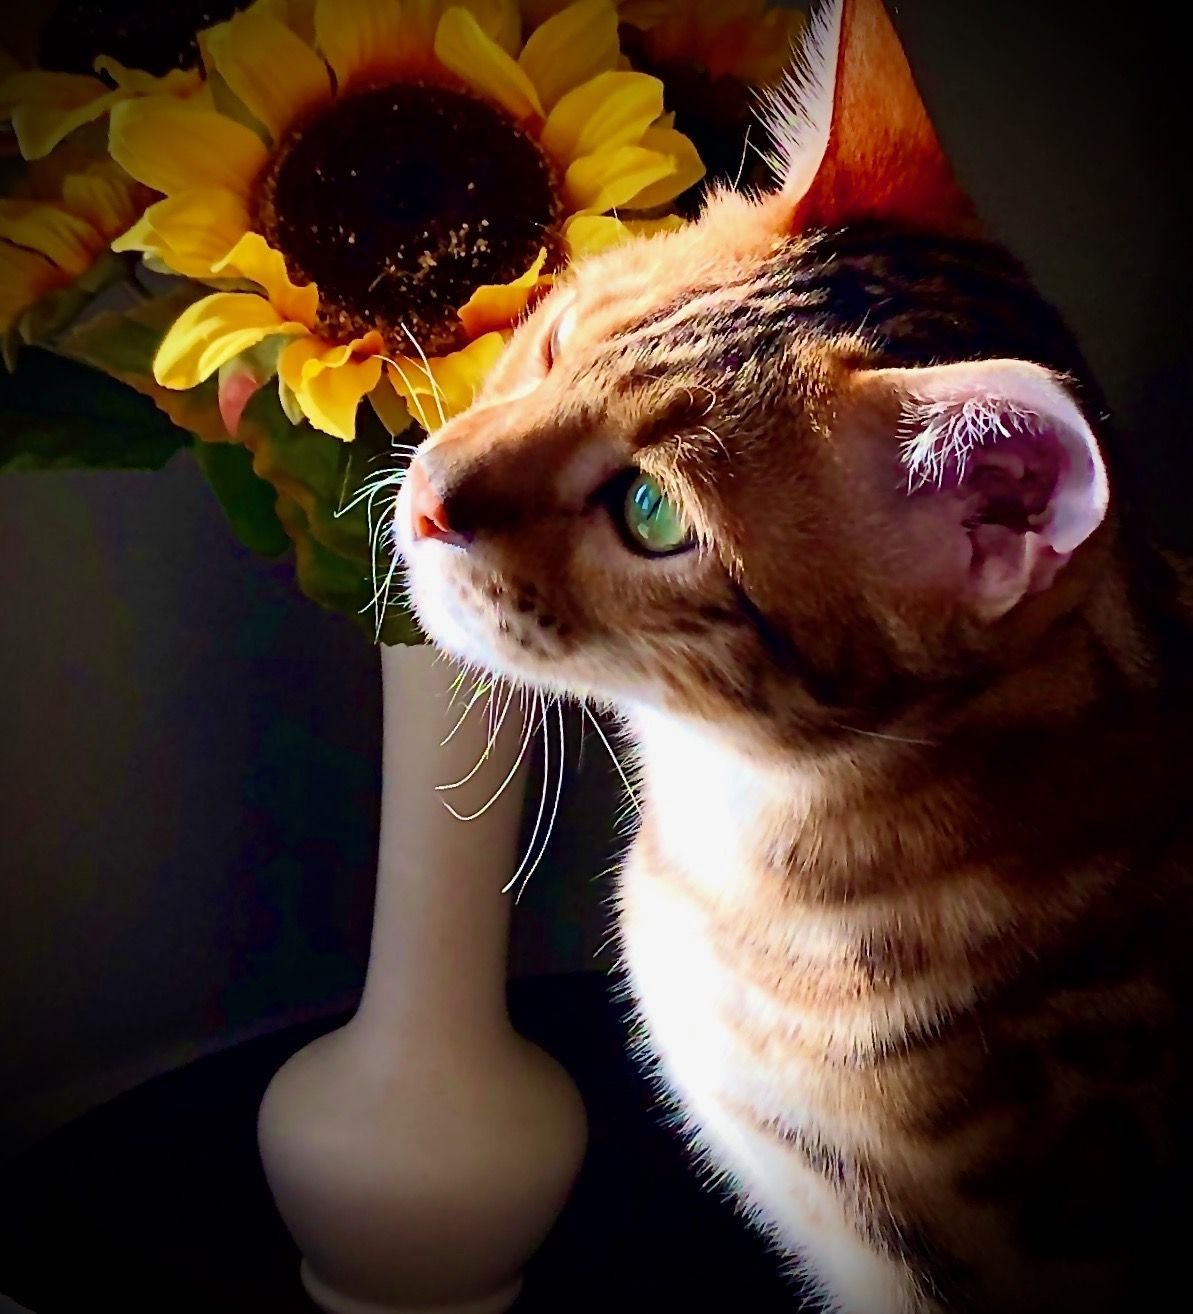 Pin by Jerri Ann on My Bengal cat, Rudy in 2020 Bengal